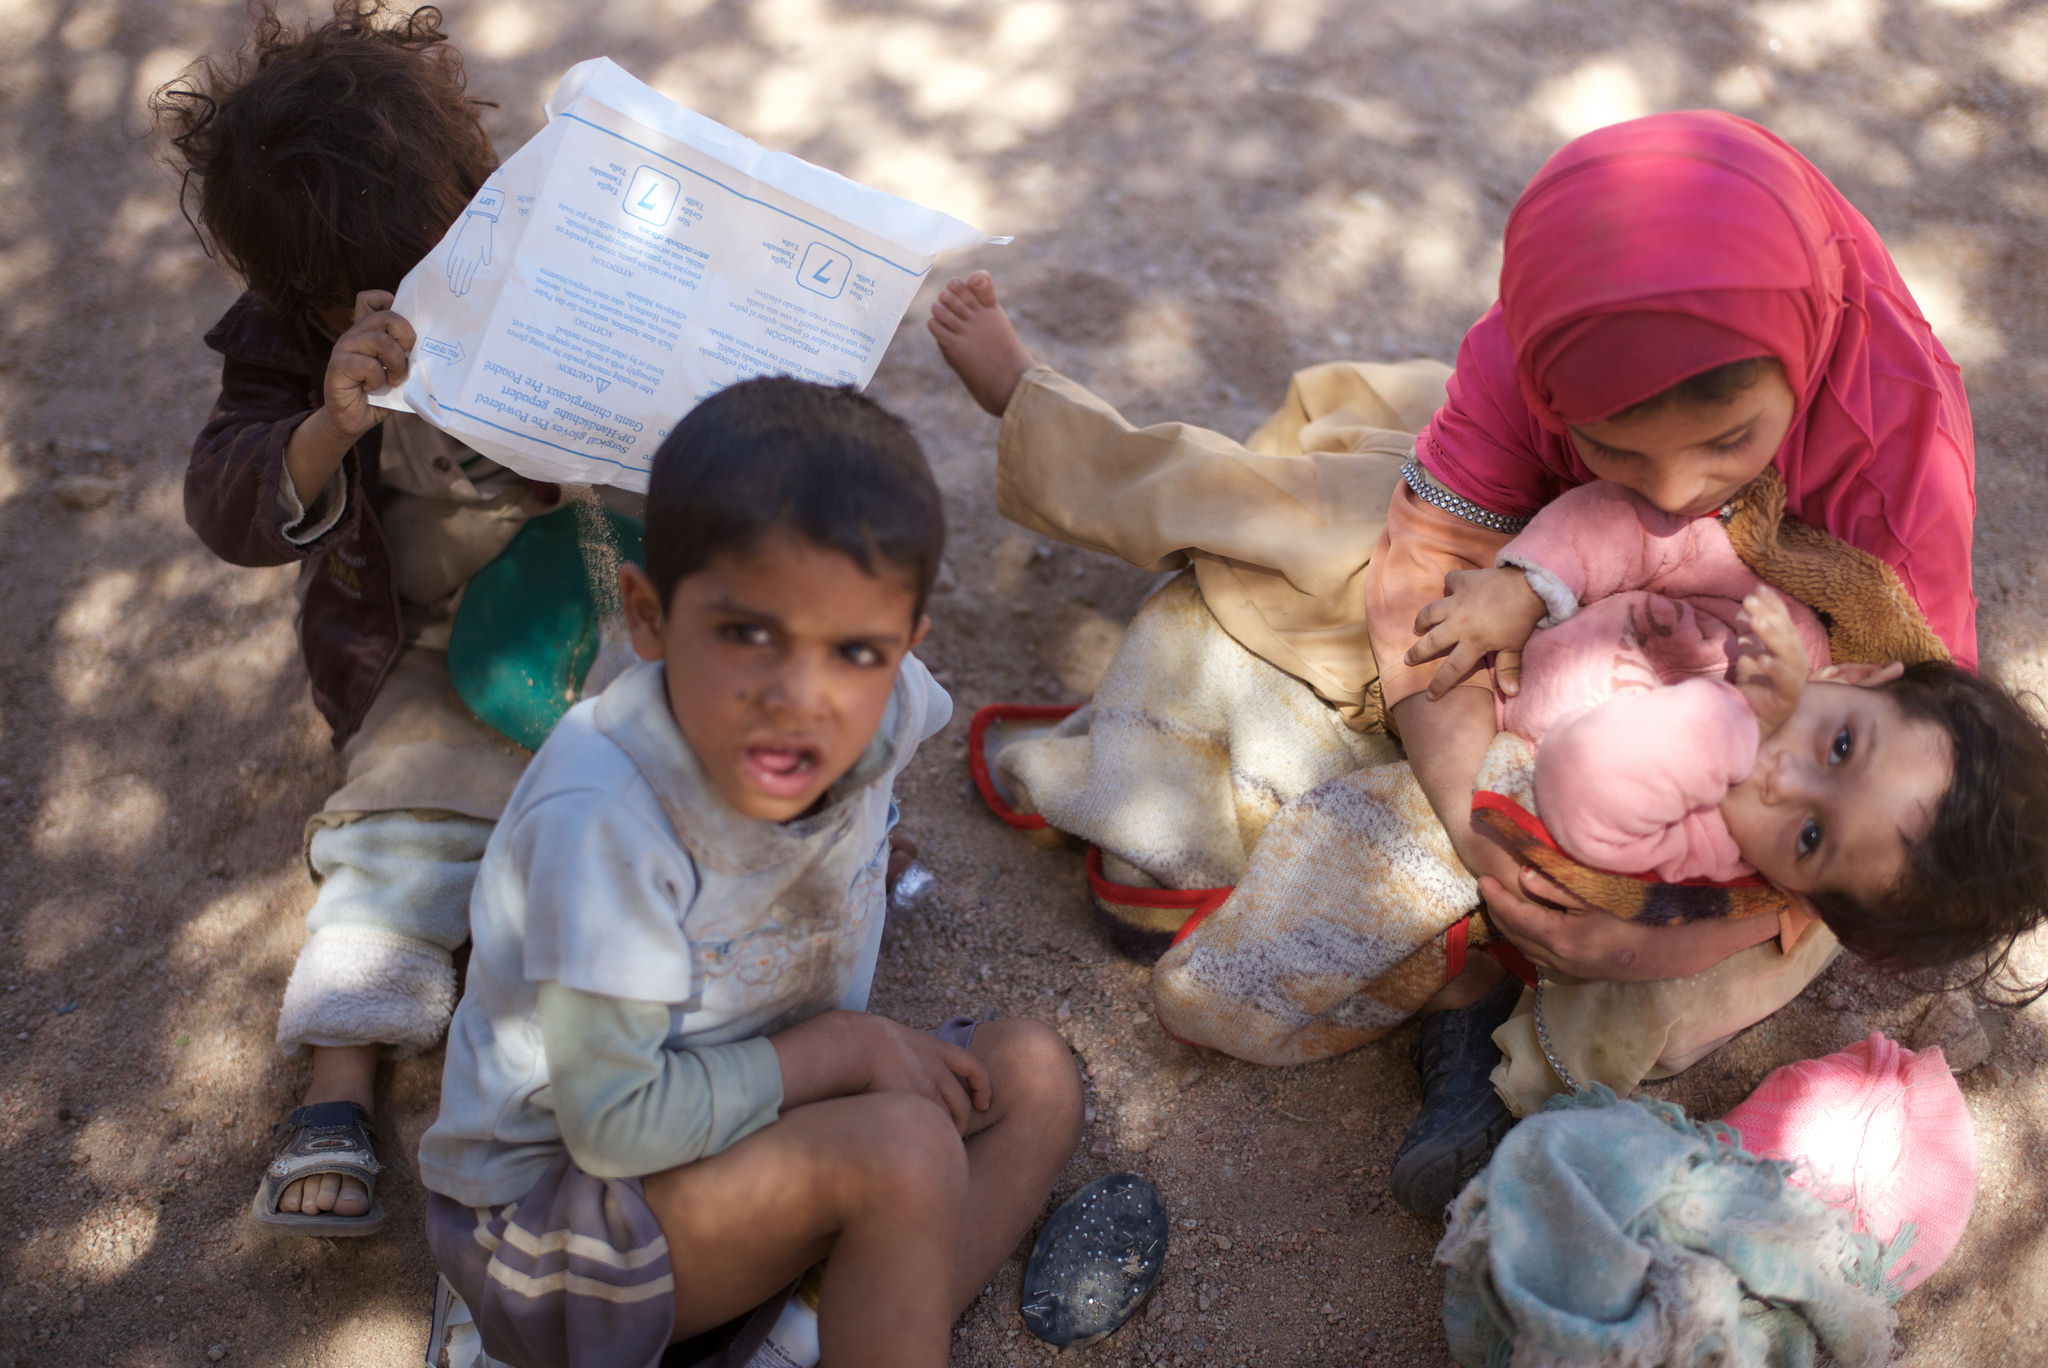 yemen-children-crisis-health-flickr